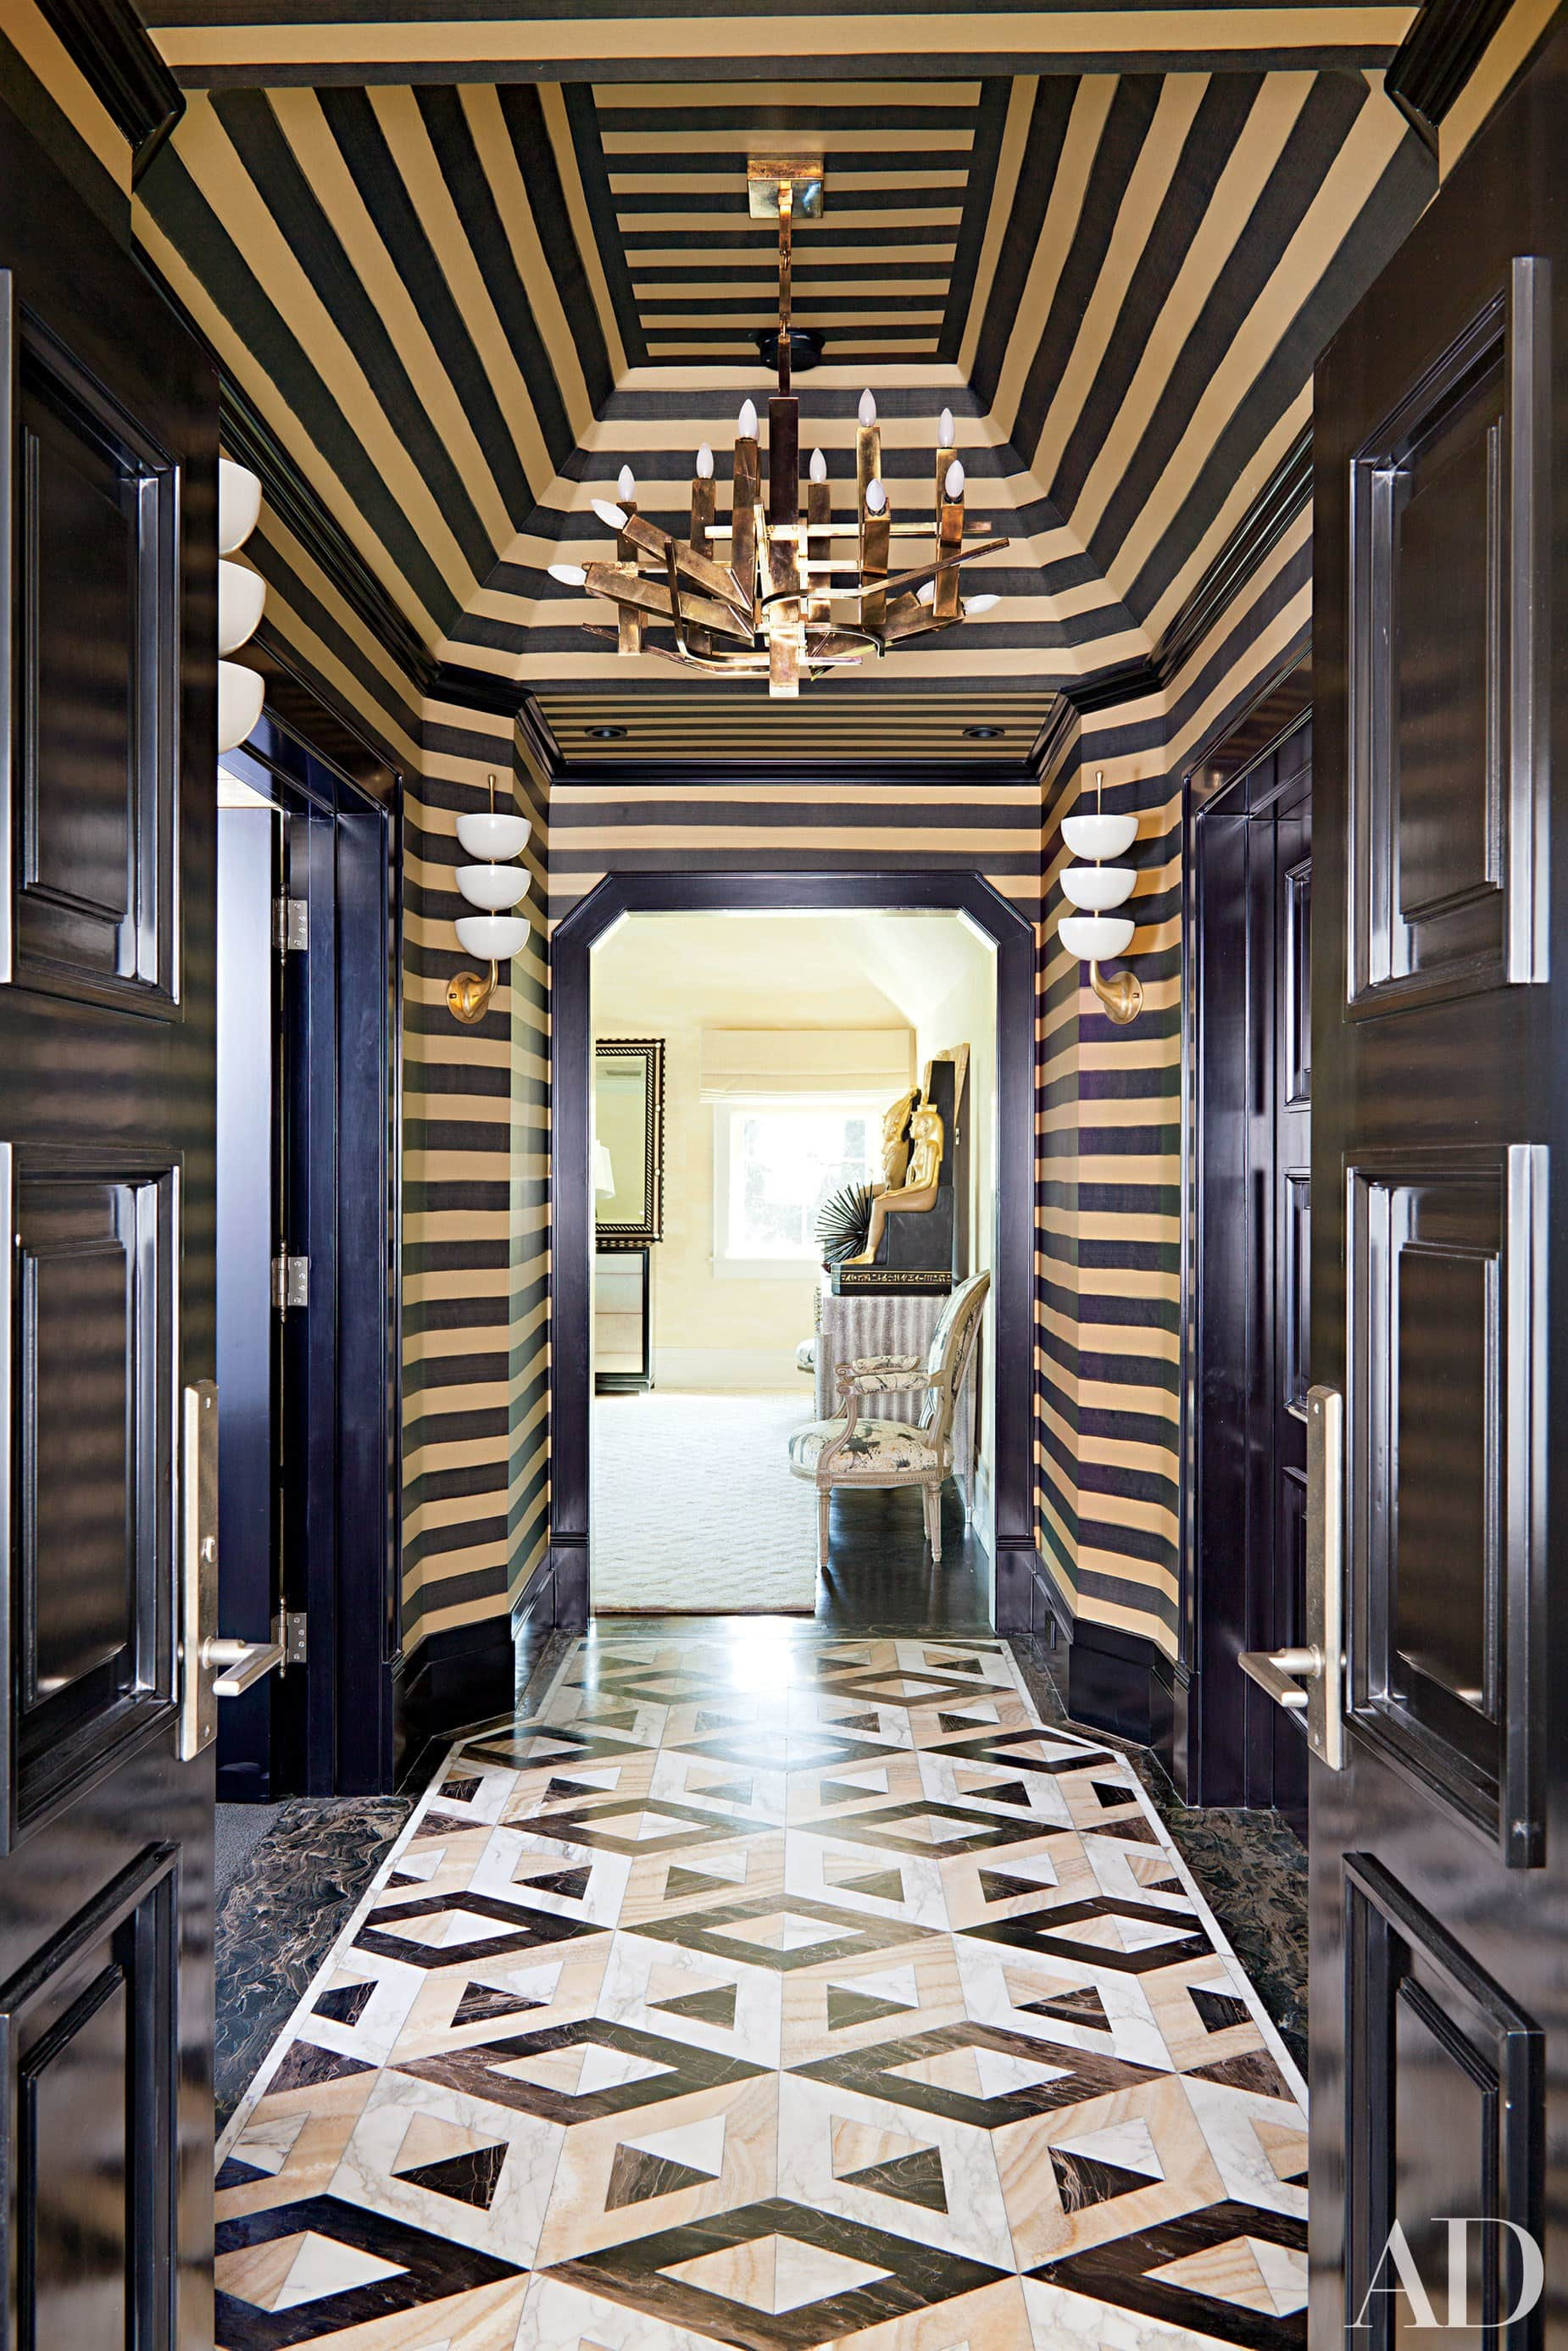 Kelly Wearstler Uses Multiple Art Deco Patterns To Create An Incredible  Chic Look In This Mater